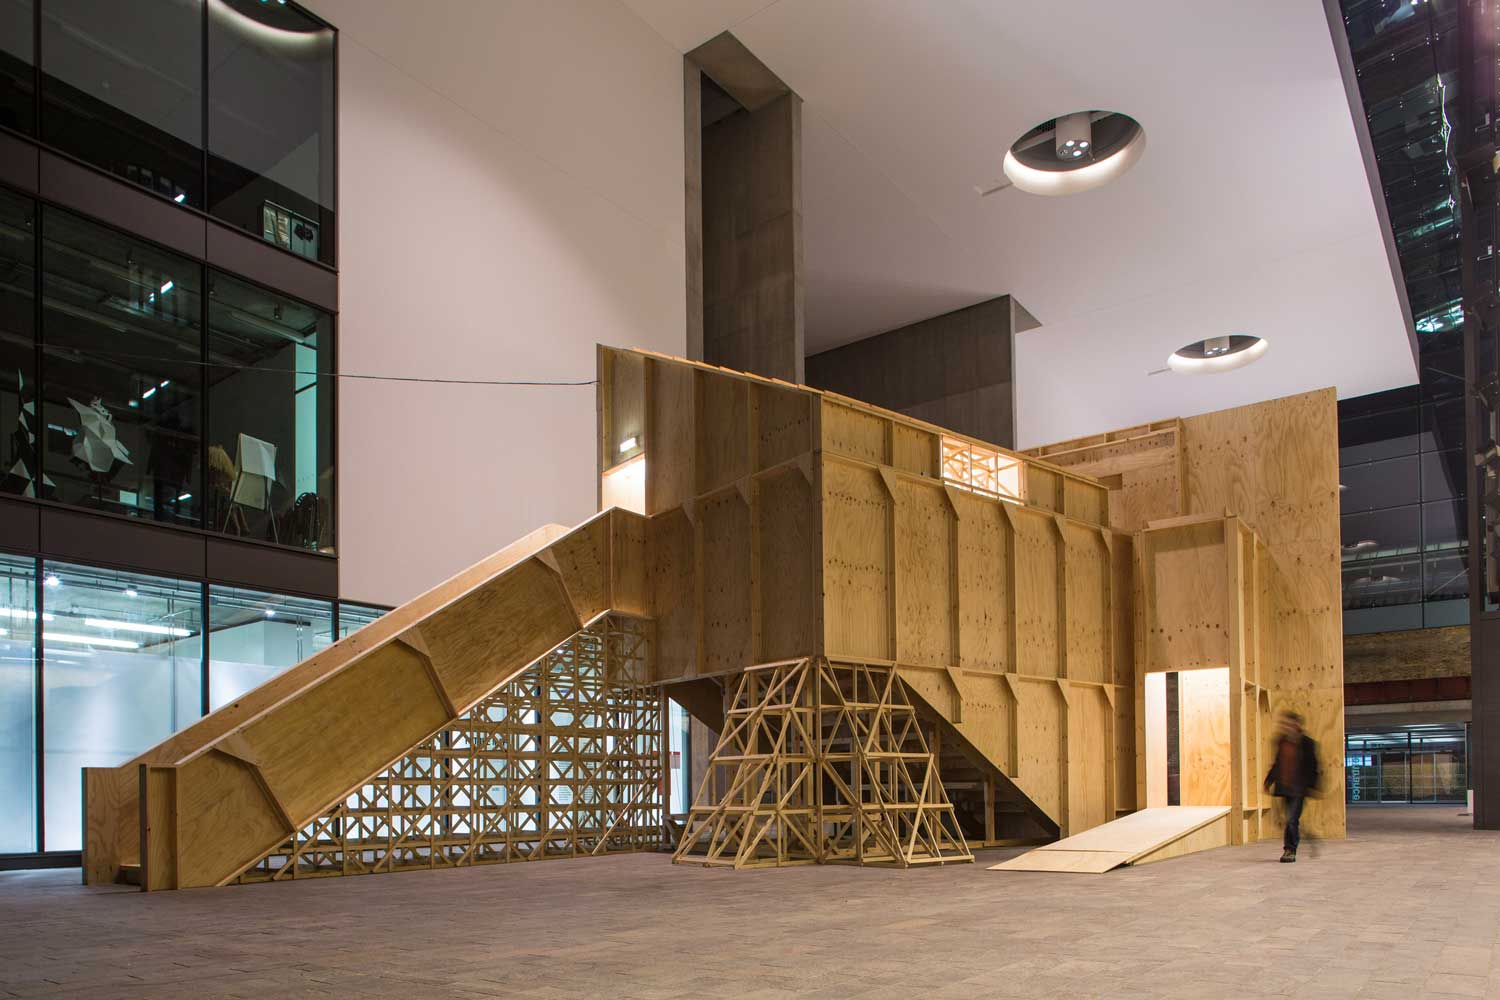 Black Maria Auditorium by GRUPPE   Yellowtrace